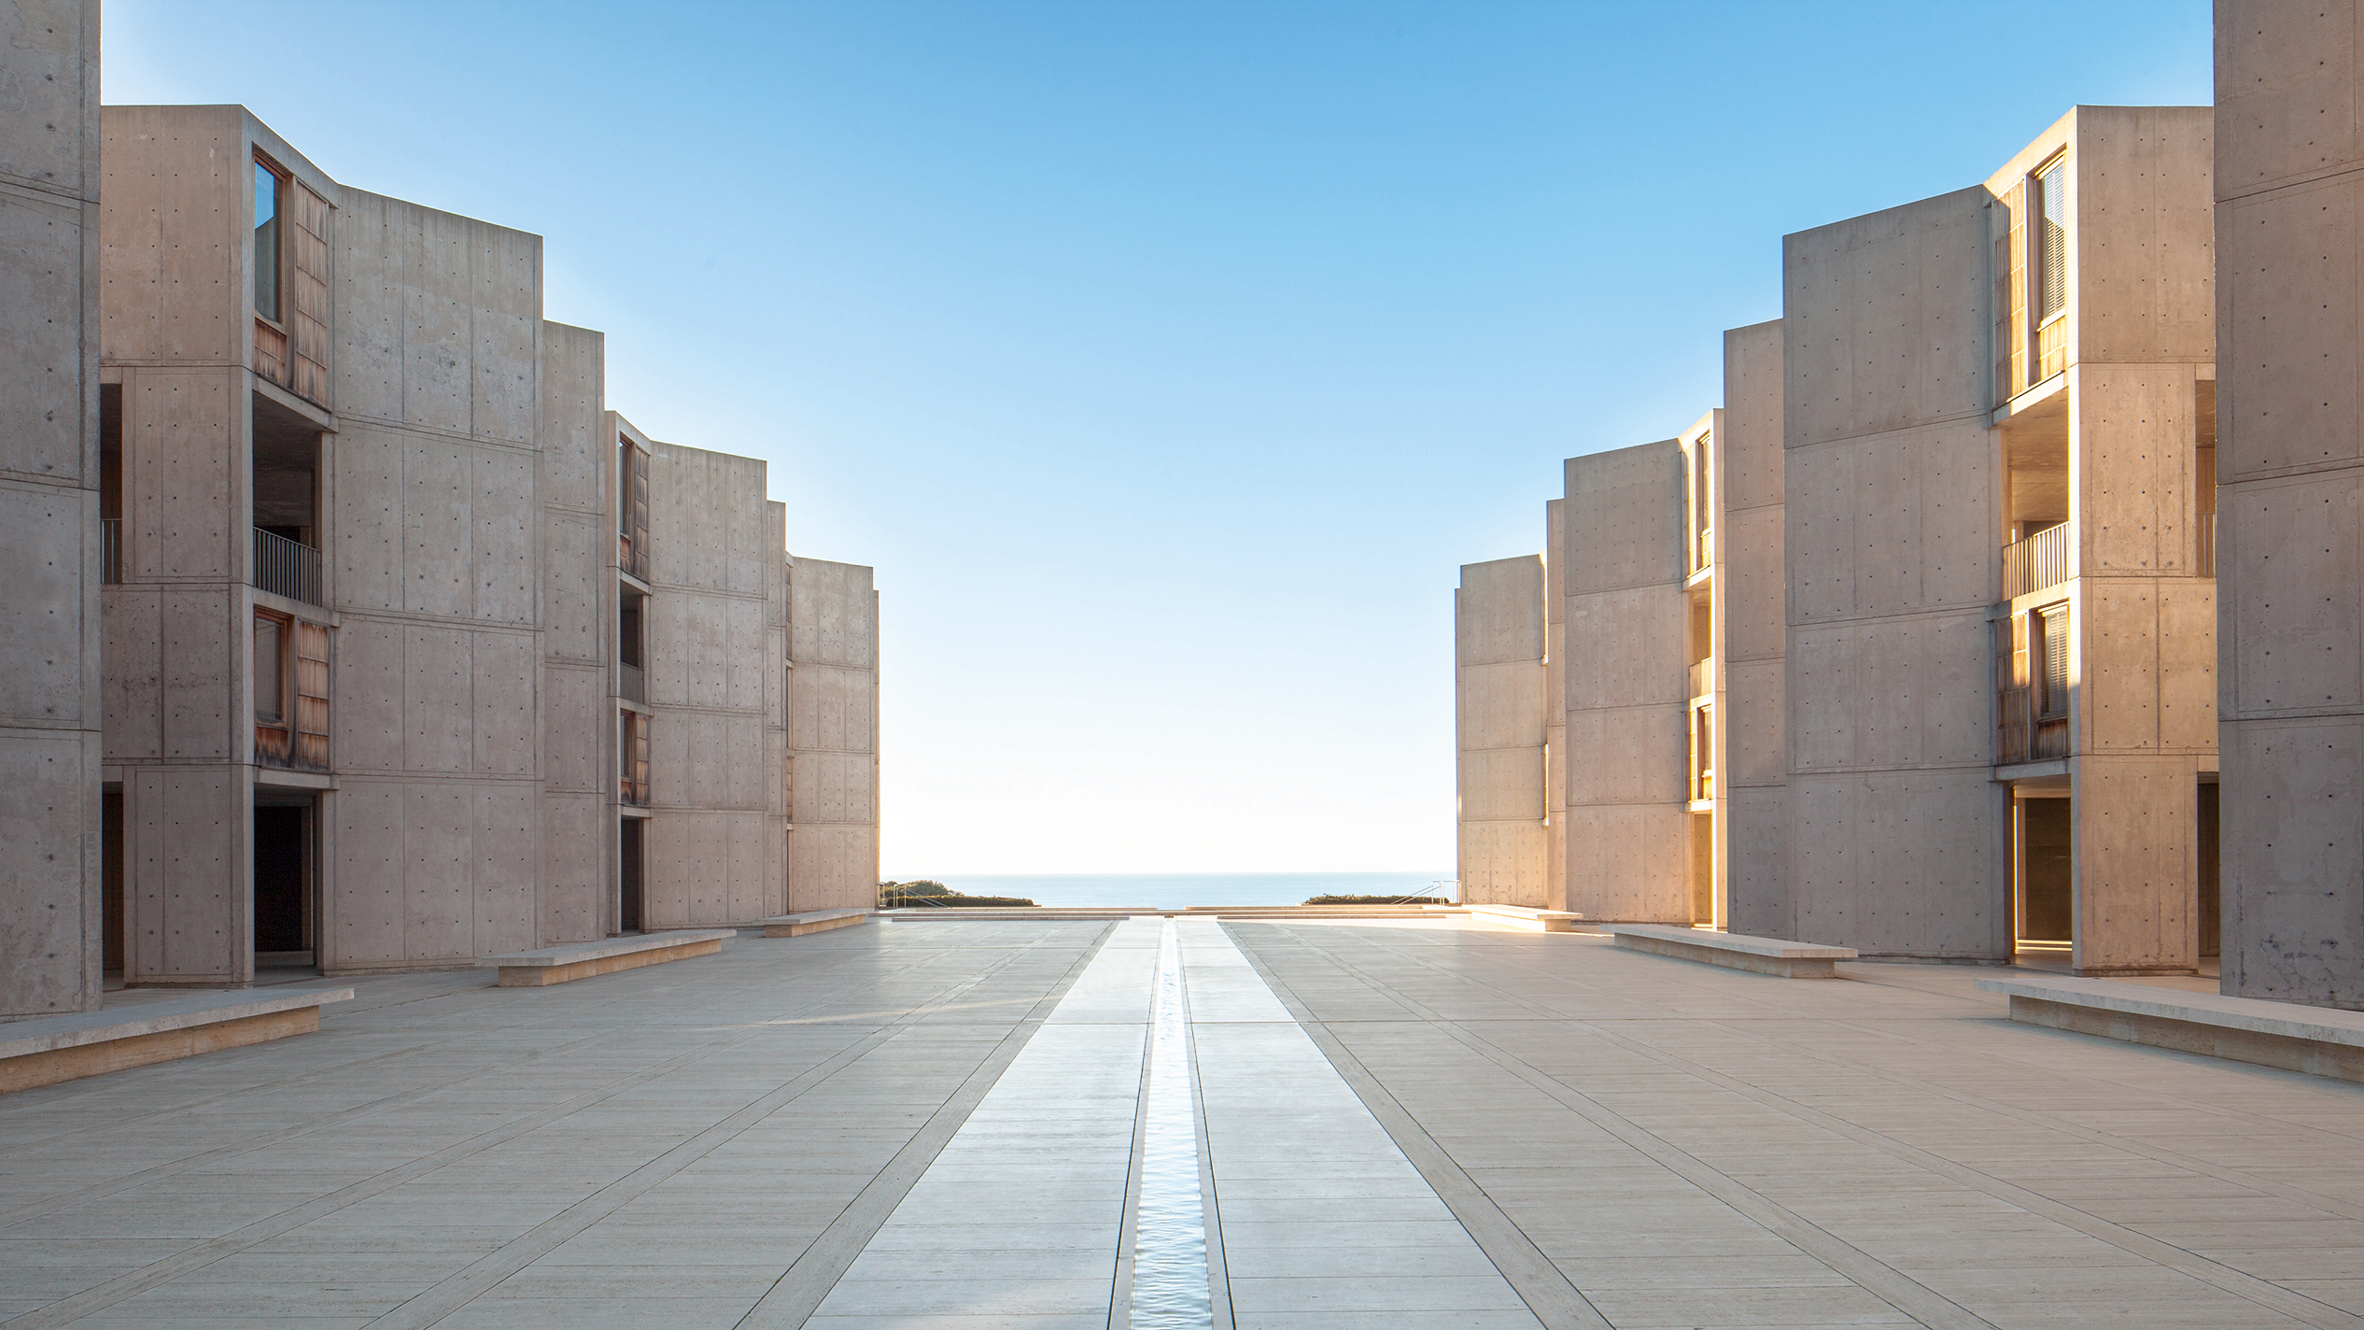 10 modernist architectural marvels on americas west coast